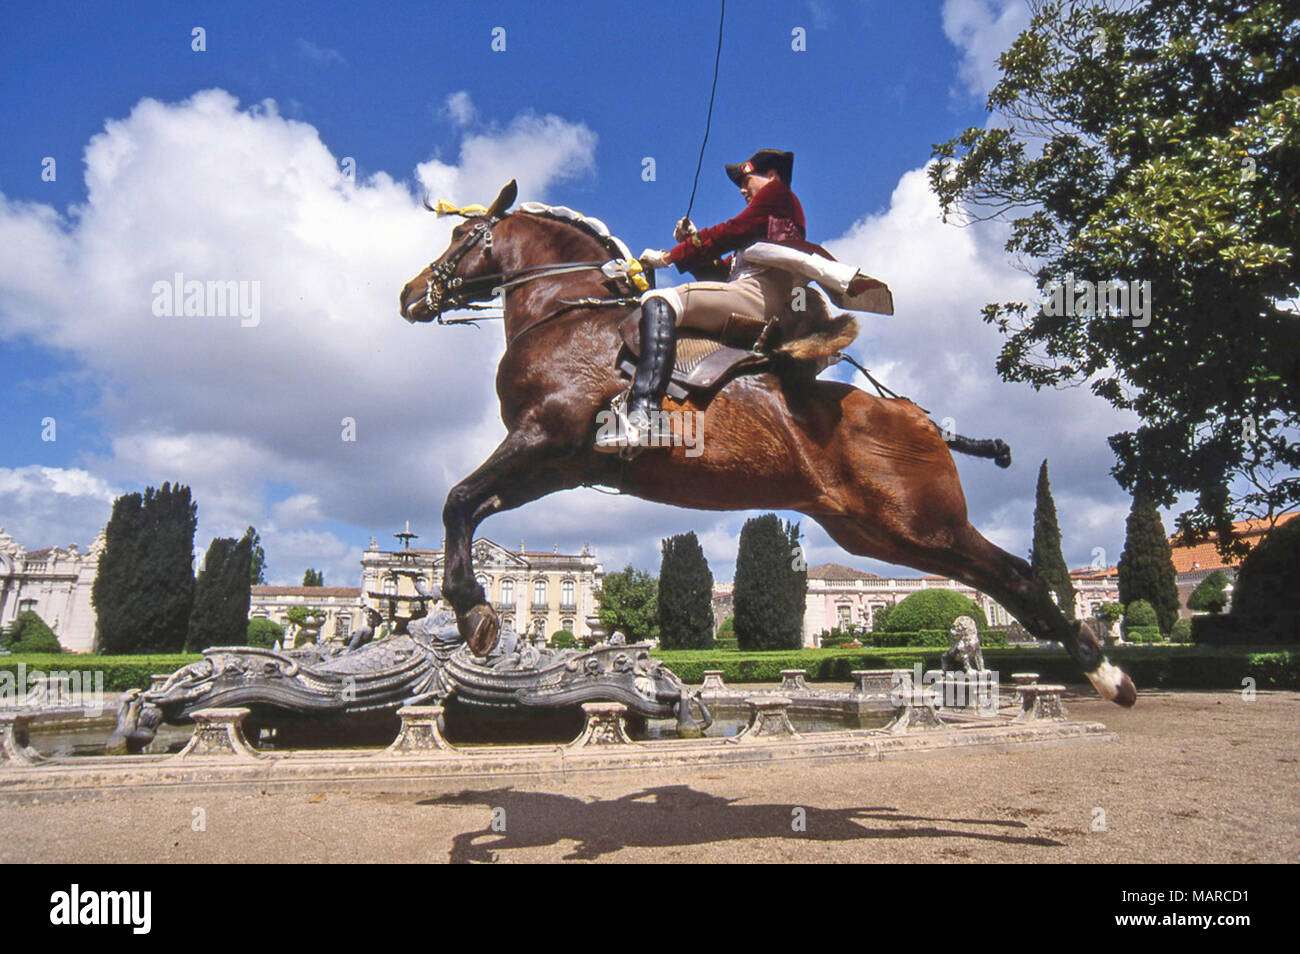 Alter Real. Bay adult with rider performing a capriole. Portugal - Stock Image